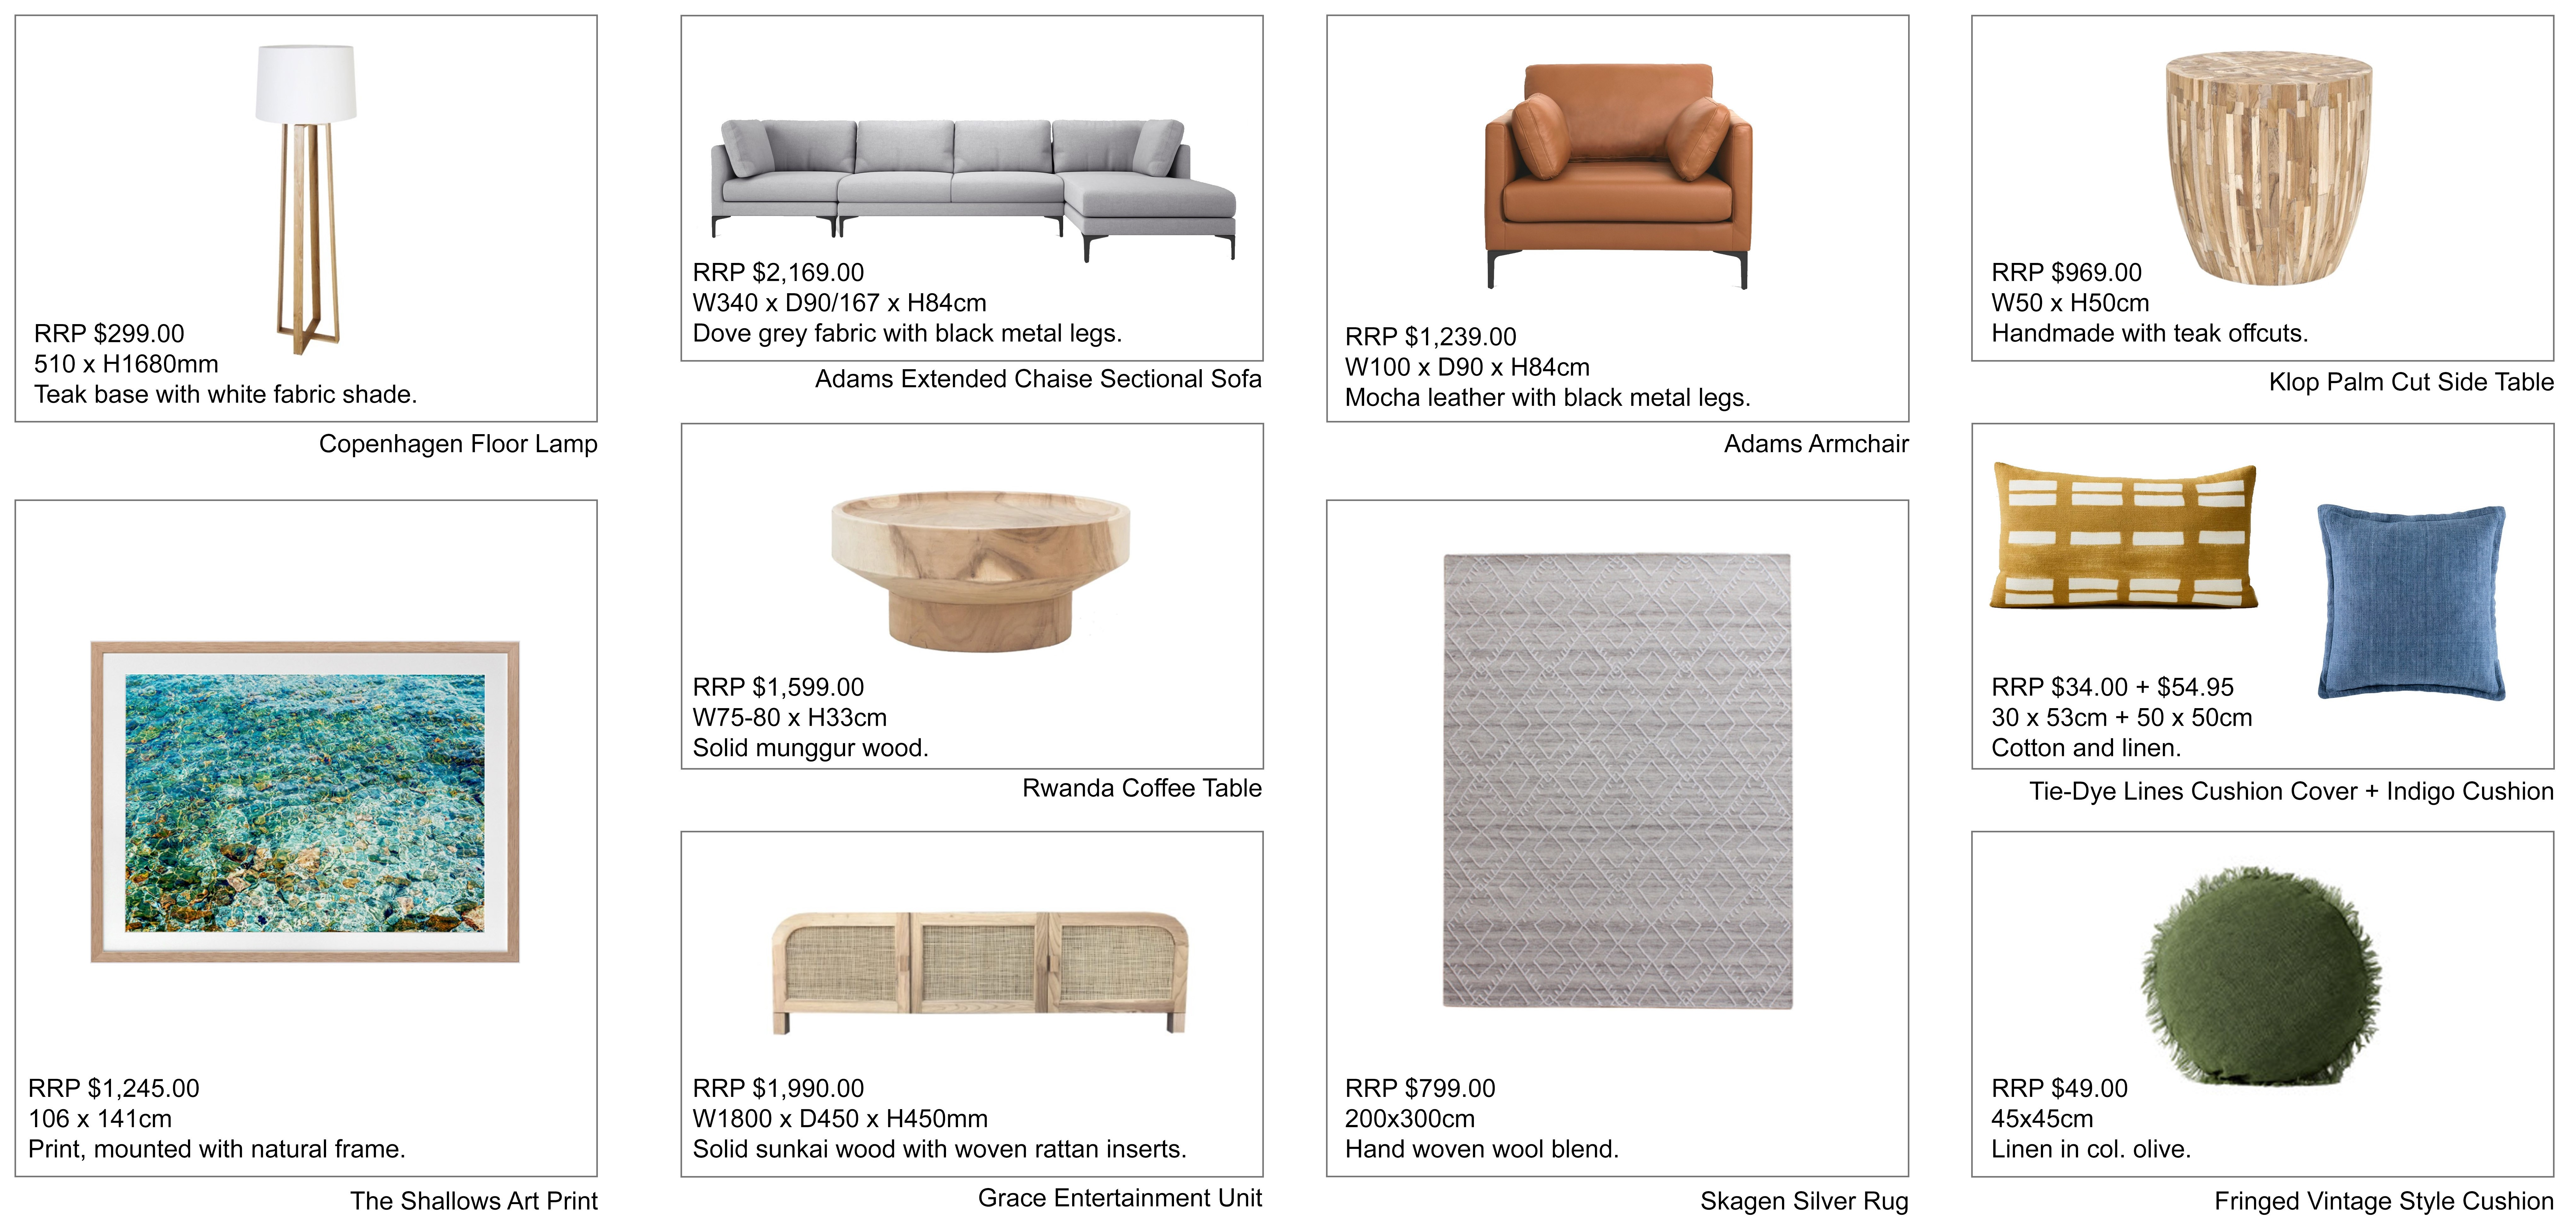 Jessicas-living-room-product-board